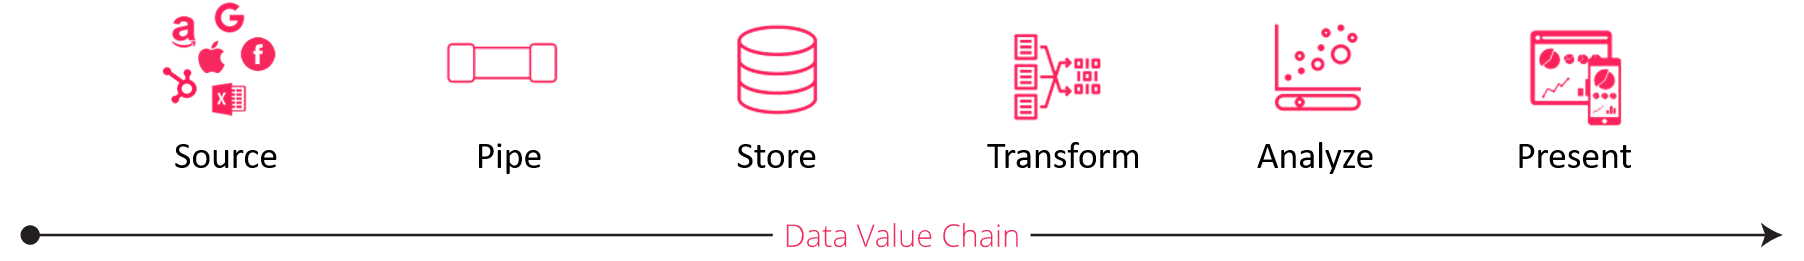 image of the data value chain